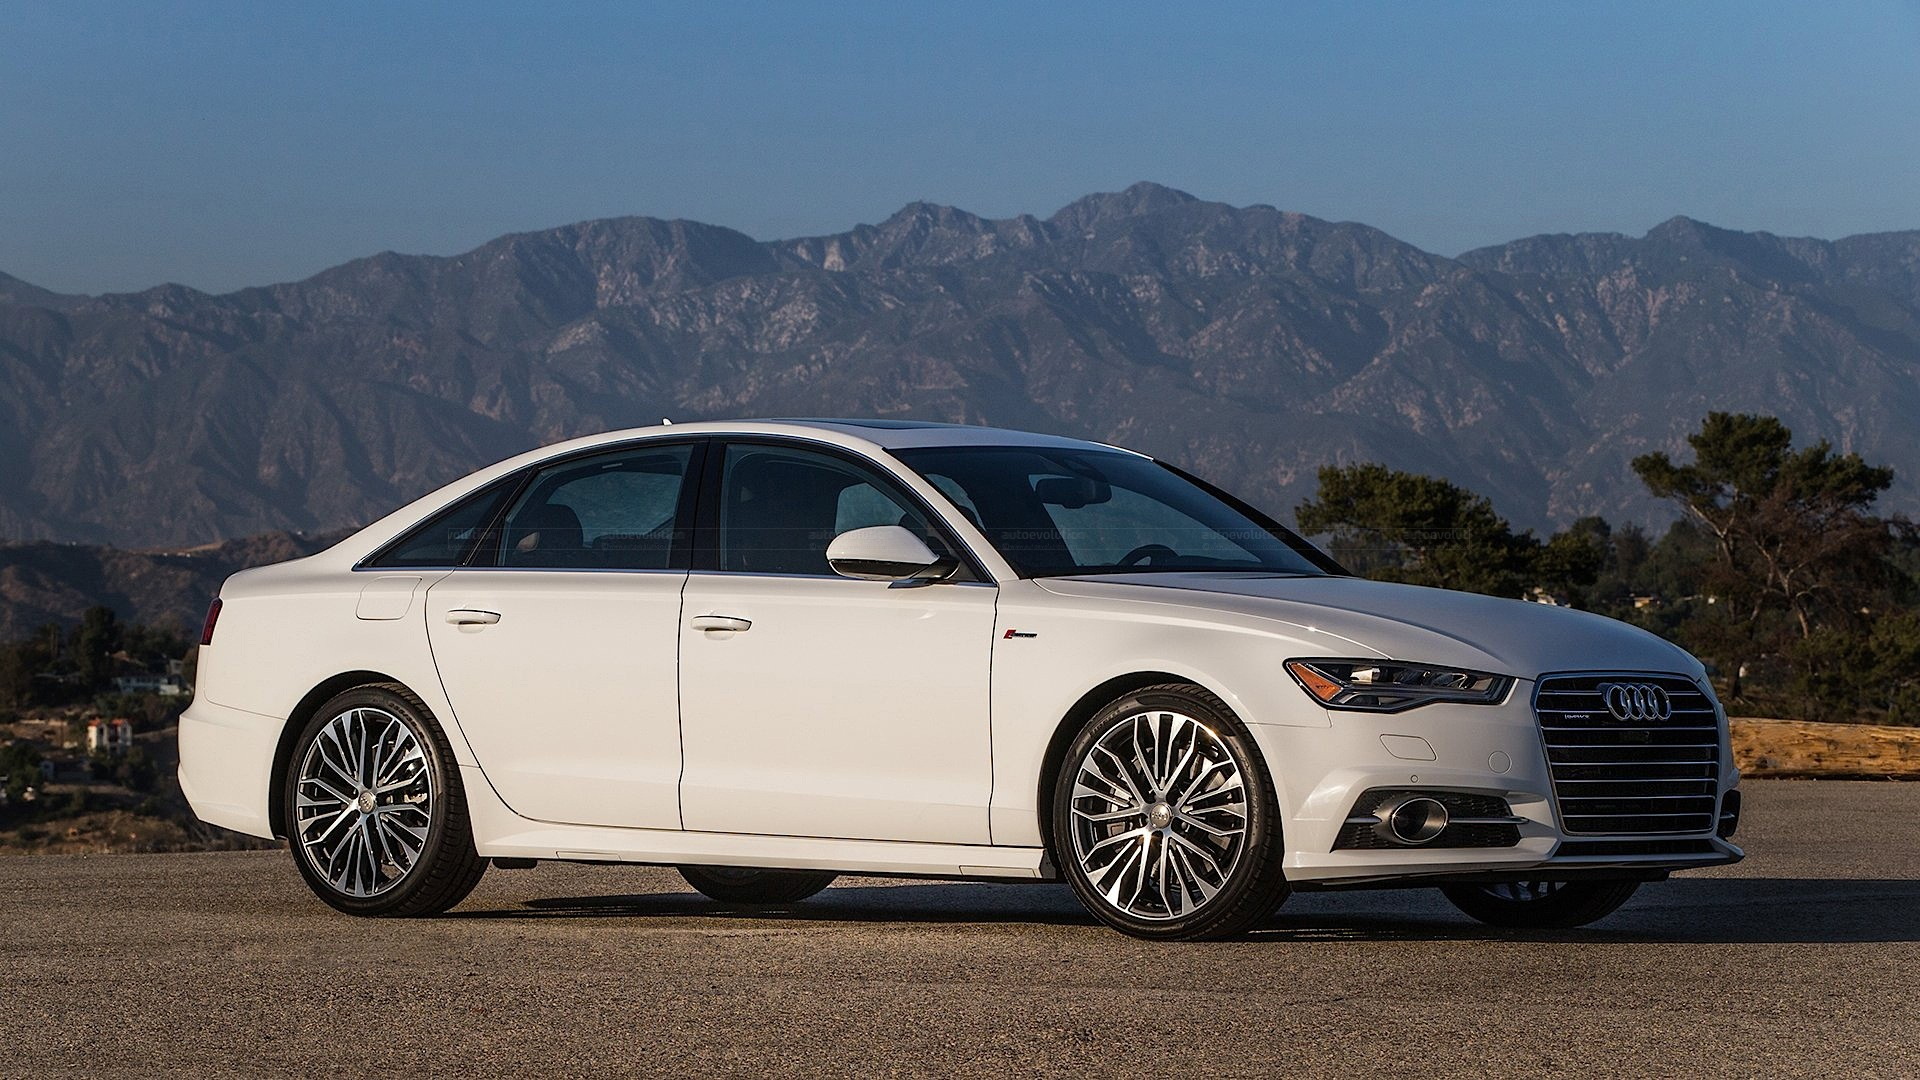 2016 Audi A6 And A7 Tfsi Quattro Models Look Handsome In